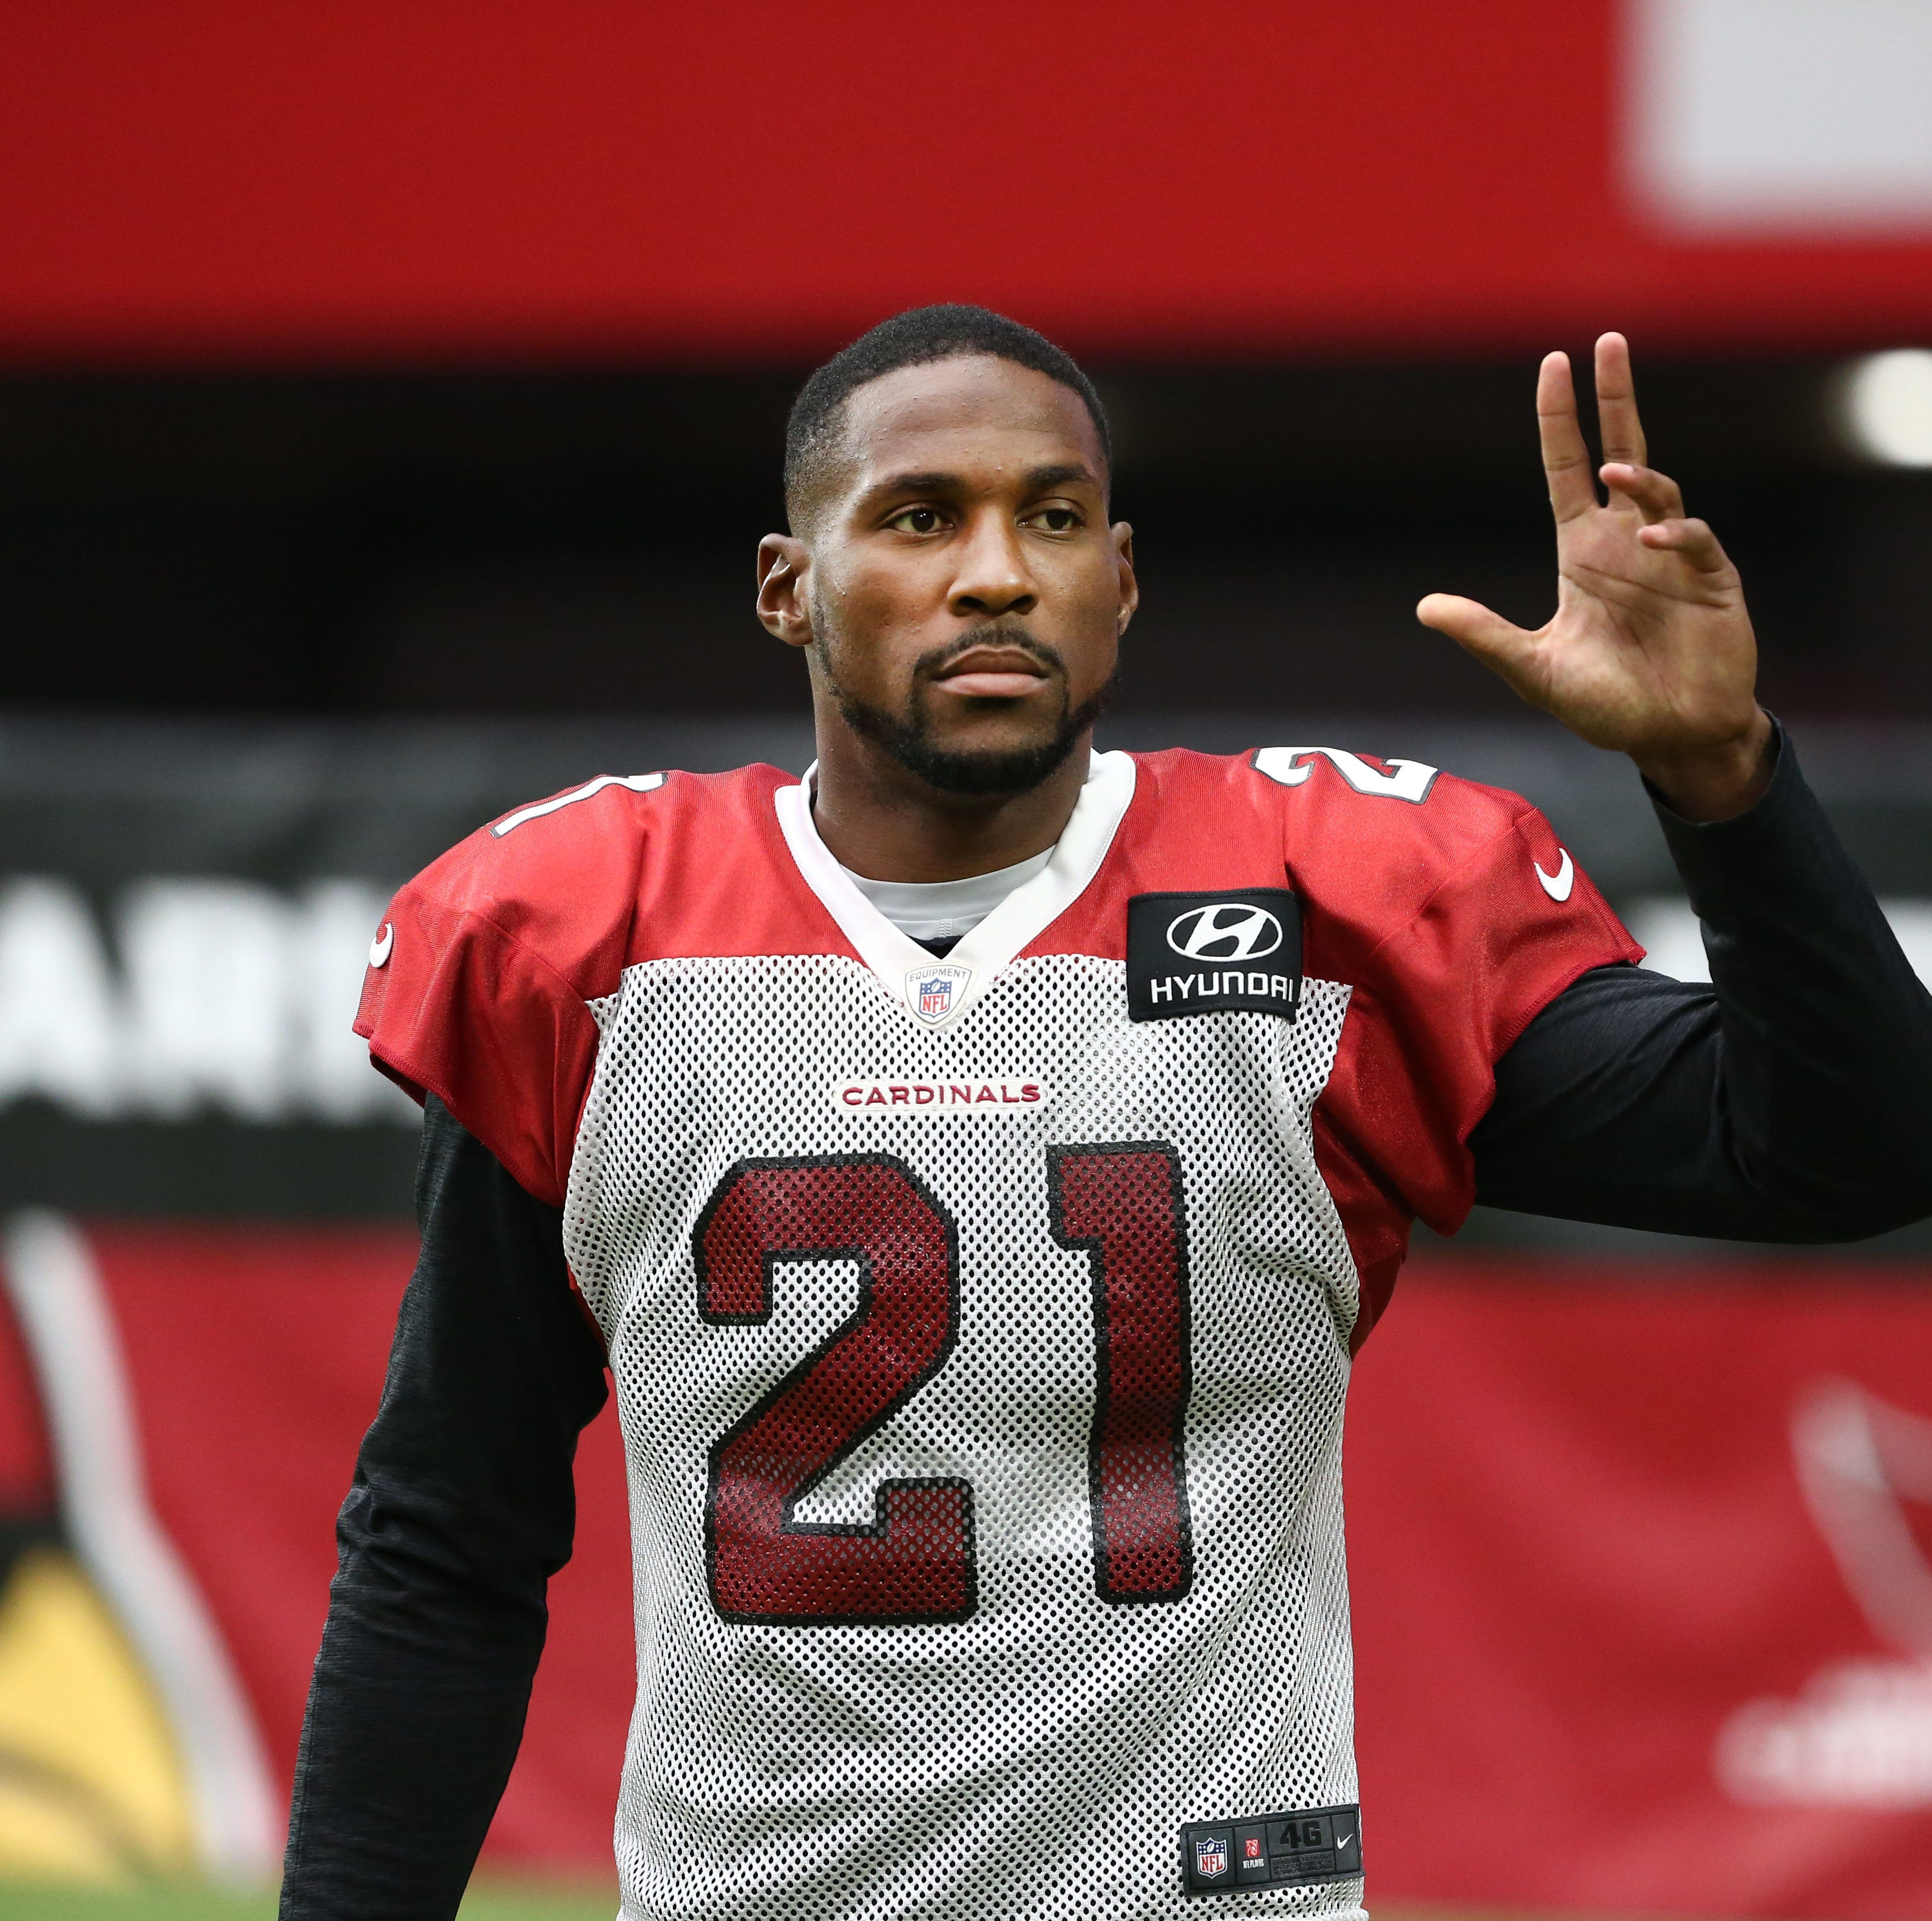 While Jalen Ramsey hates on other players in GQ, he has some praise for Patrick Peterson